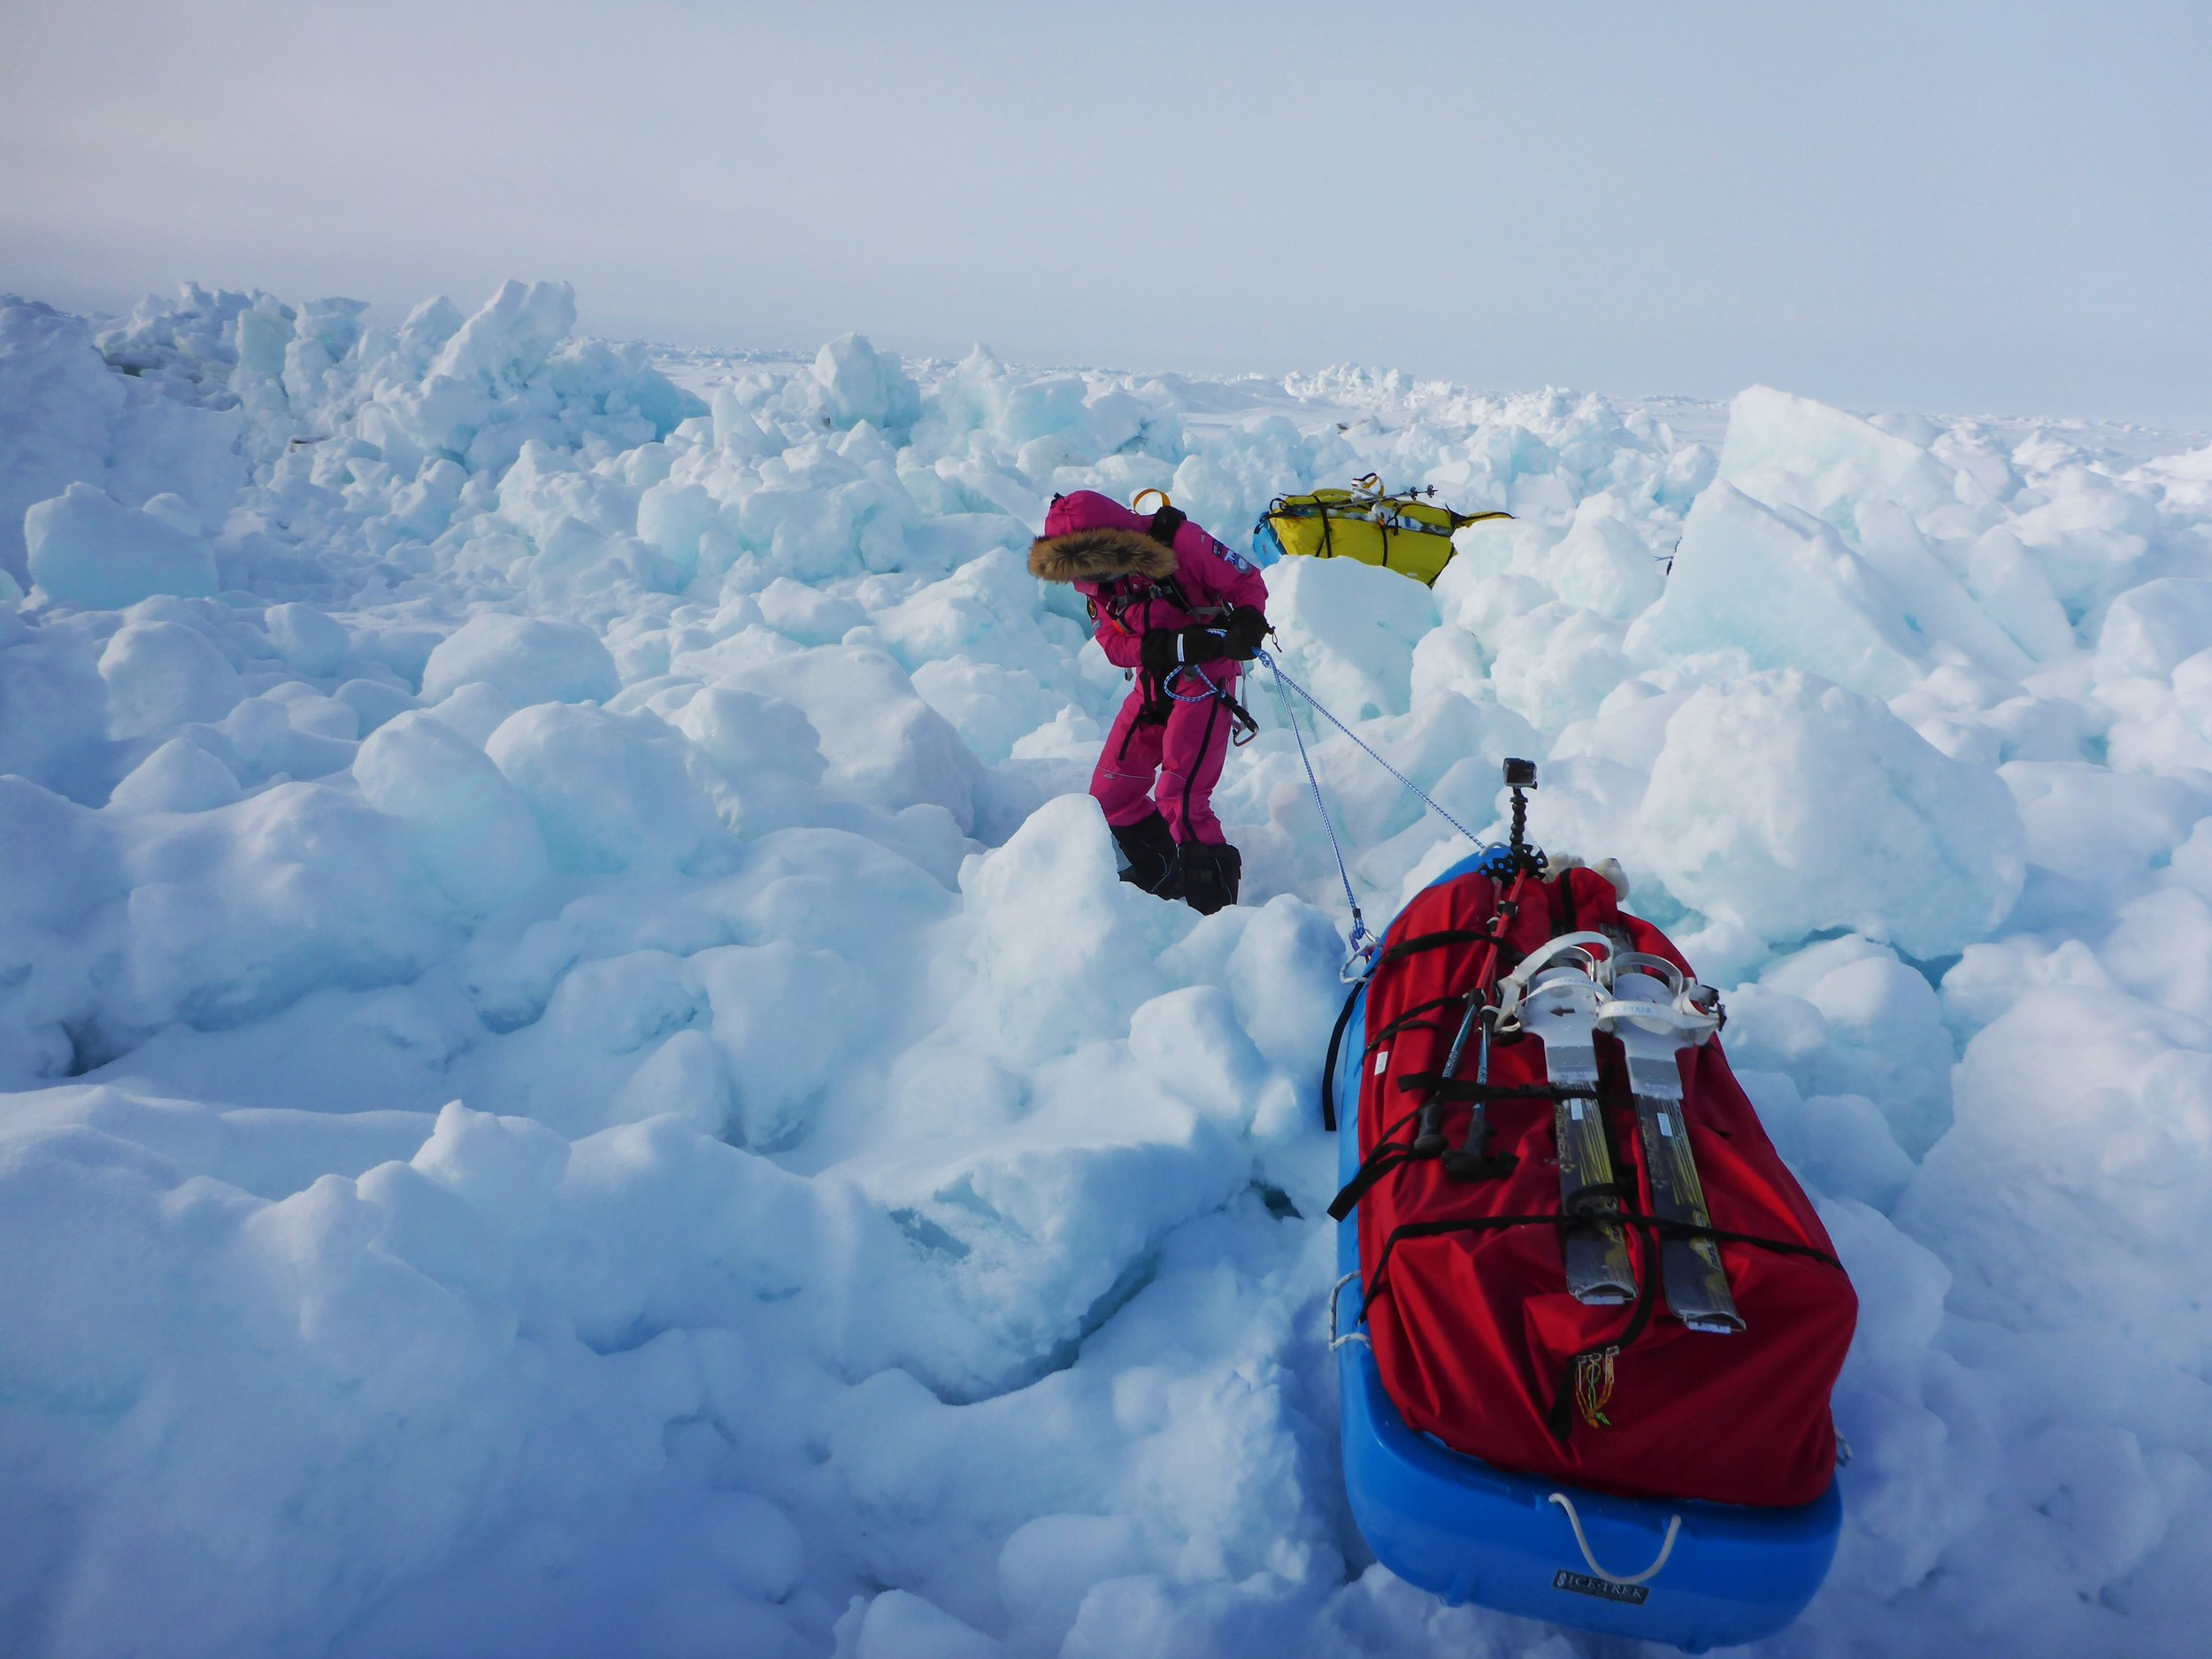 Jade making her way through a large compression zone towards the North Pole, age 14